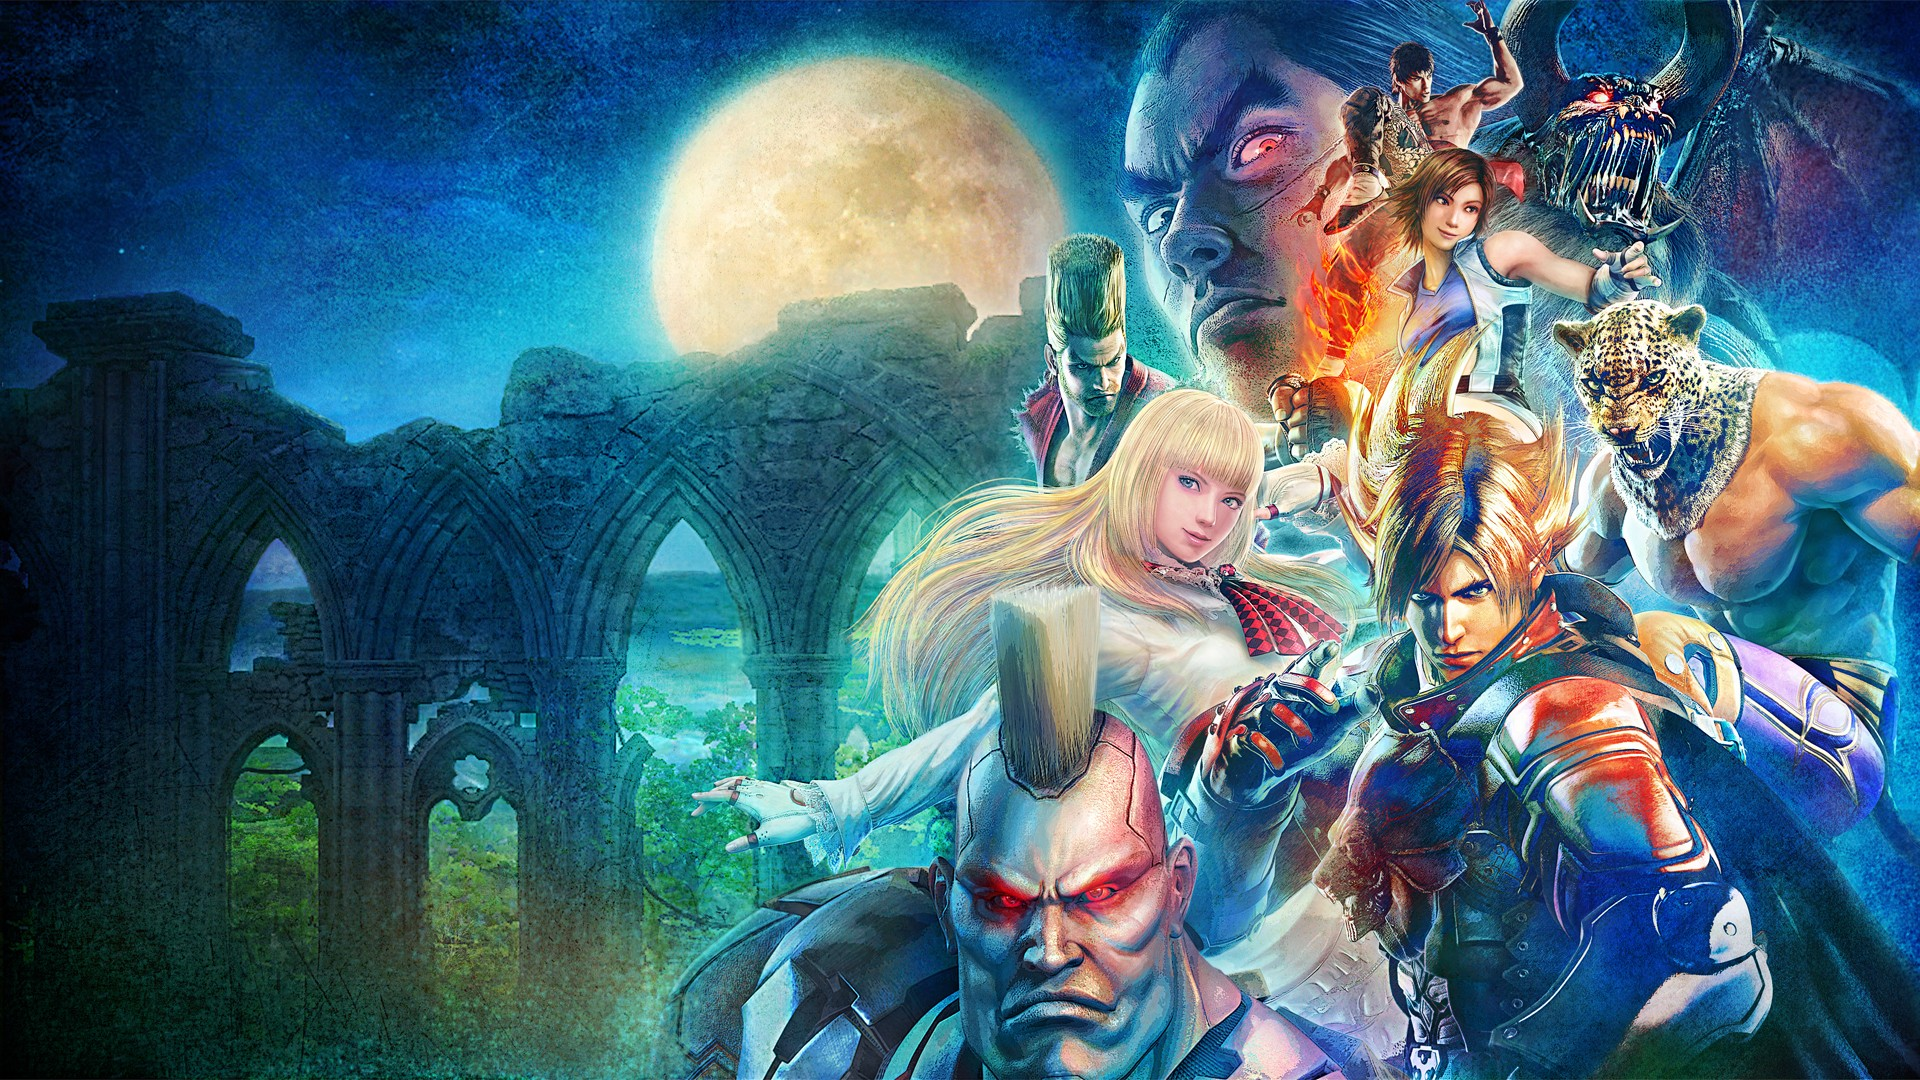 Hq 3d Wallpapers Free Download Collection Of New Tekken Hd Wallpapers All Hd Wallpapers